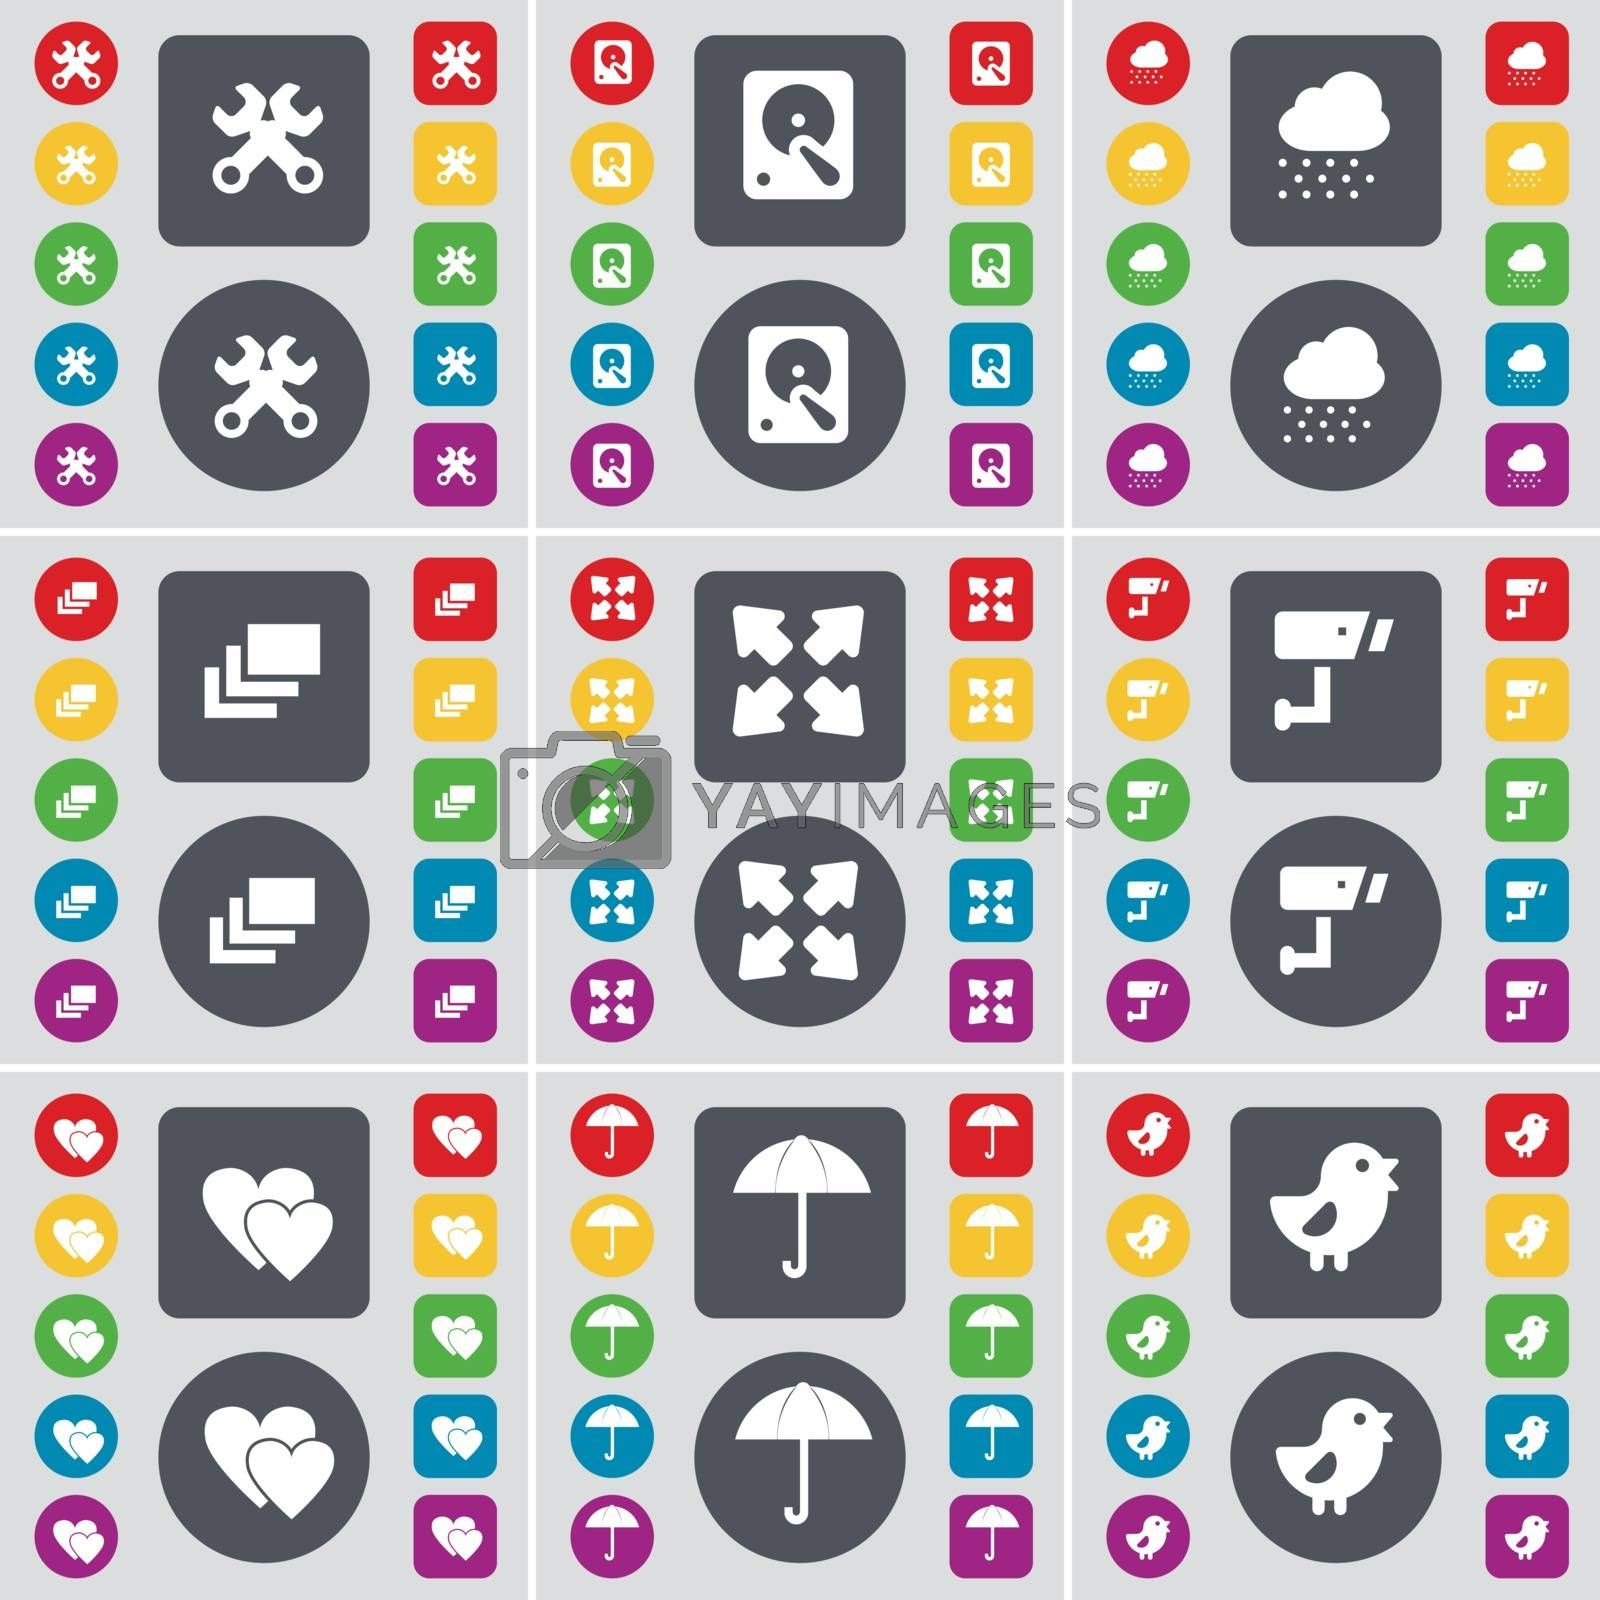 Royalty free image of Wrench, Hard drive, Cloud, Gallery, Full screen, CCTV, Heart, Umbrella, Bird icon symbol. A large set of flat, colored buttons for your design. Vector by serhii_lohvyniuk